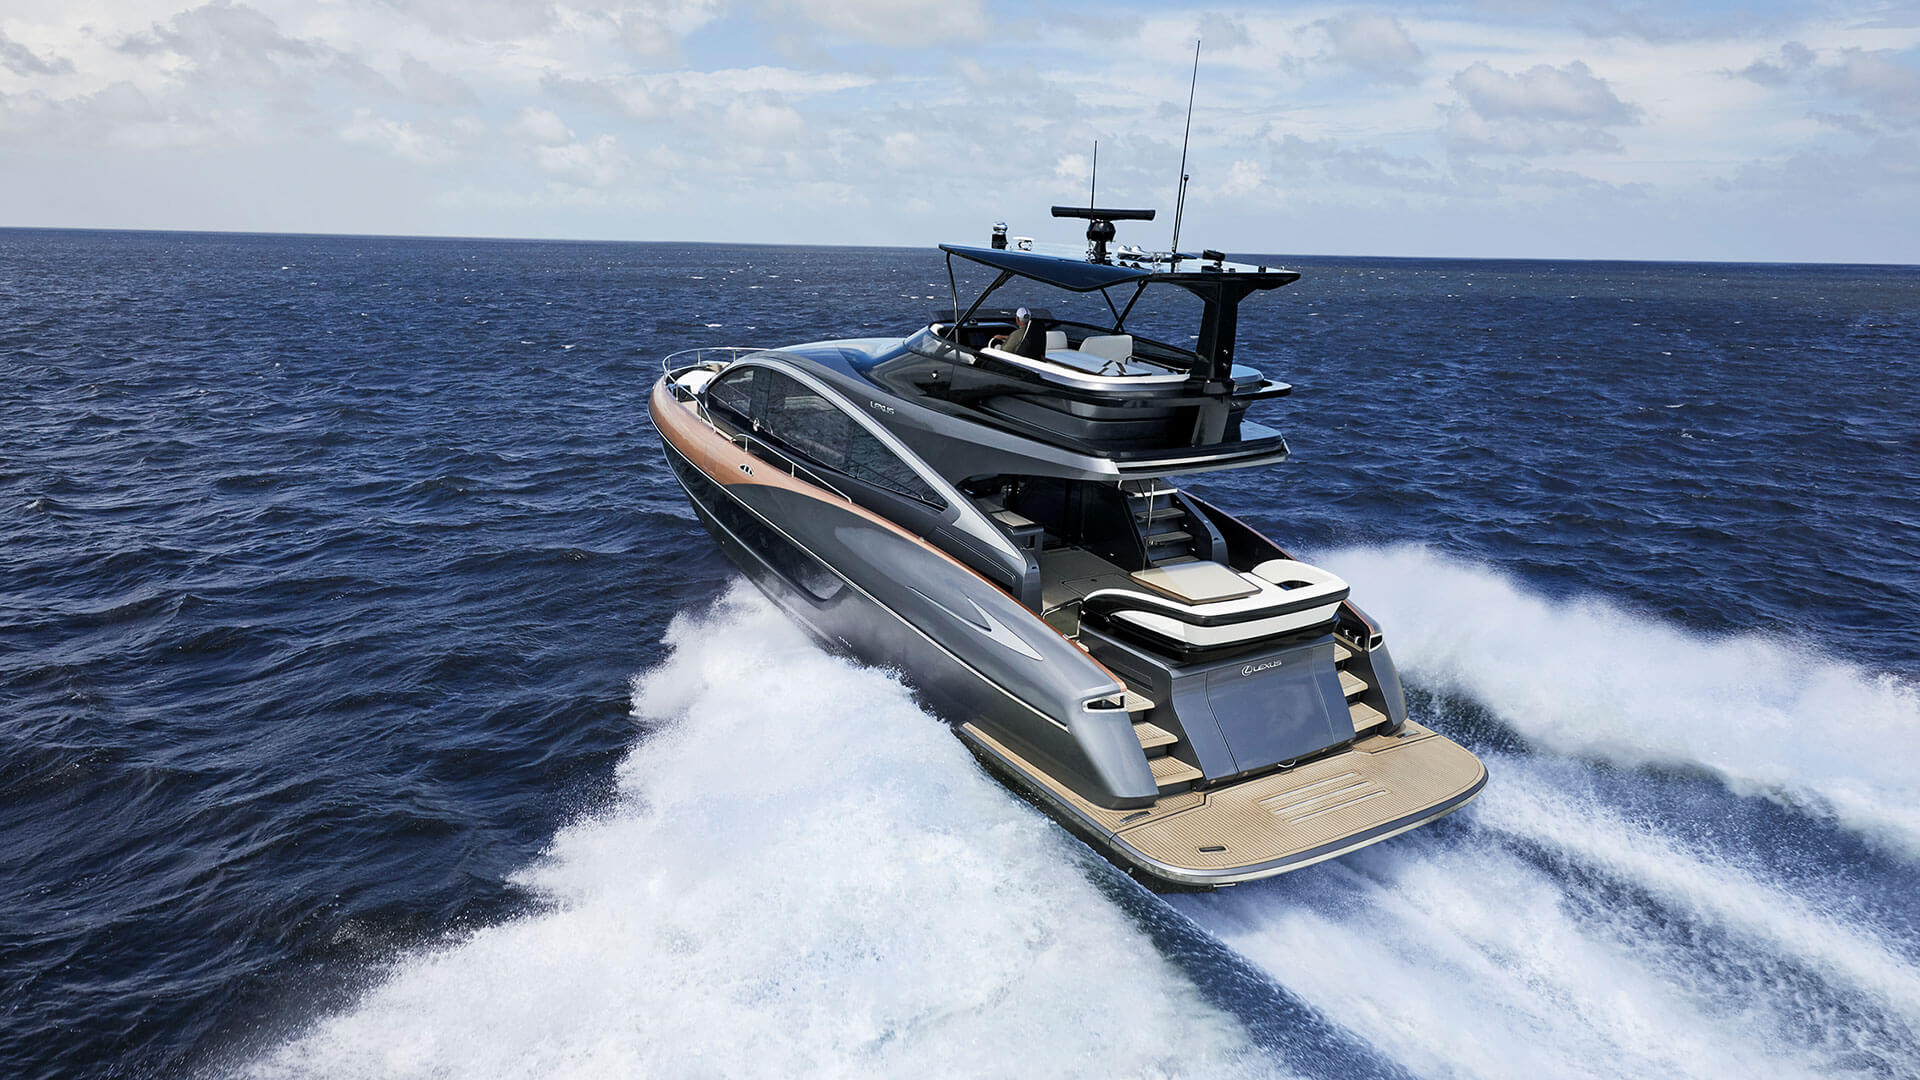 2020 lexus yacht ly 650 premiere gallery 03